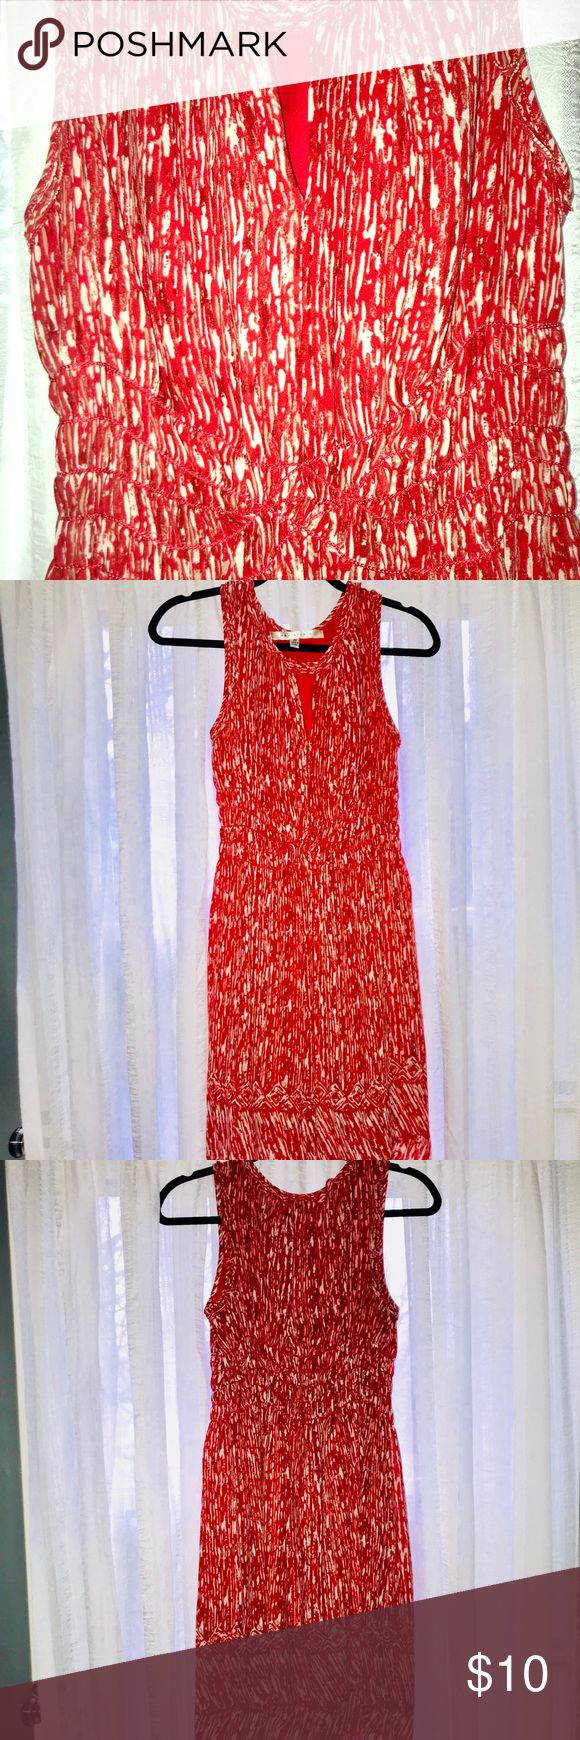 MAXSTUDIO Red and White Patterned Key hole dress Max Studio Dress Size M.  Red & White Pattern. Features include a keyhole neckline and smocked waist. Great condition no defects. Smoke free home. Dress is lined. Max Studio Dresses